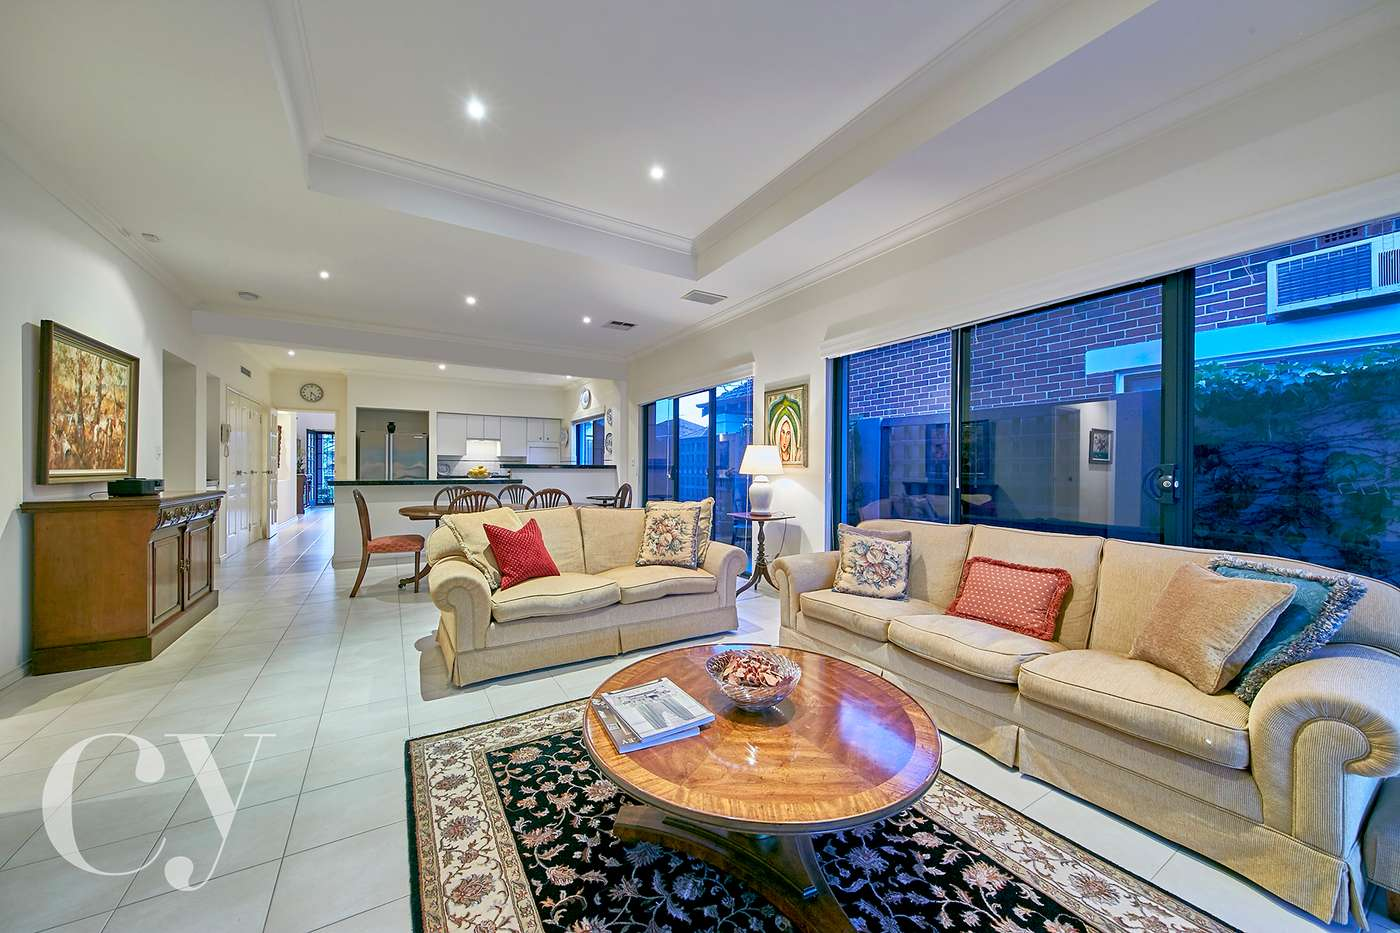 Main view of Homely house listing, 30 Norfolk Street, South Perth, WA 6151